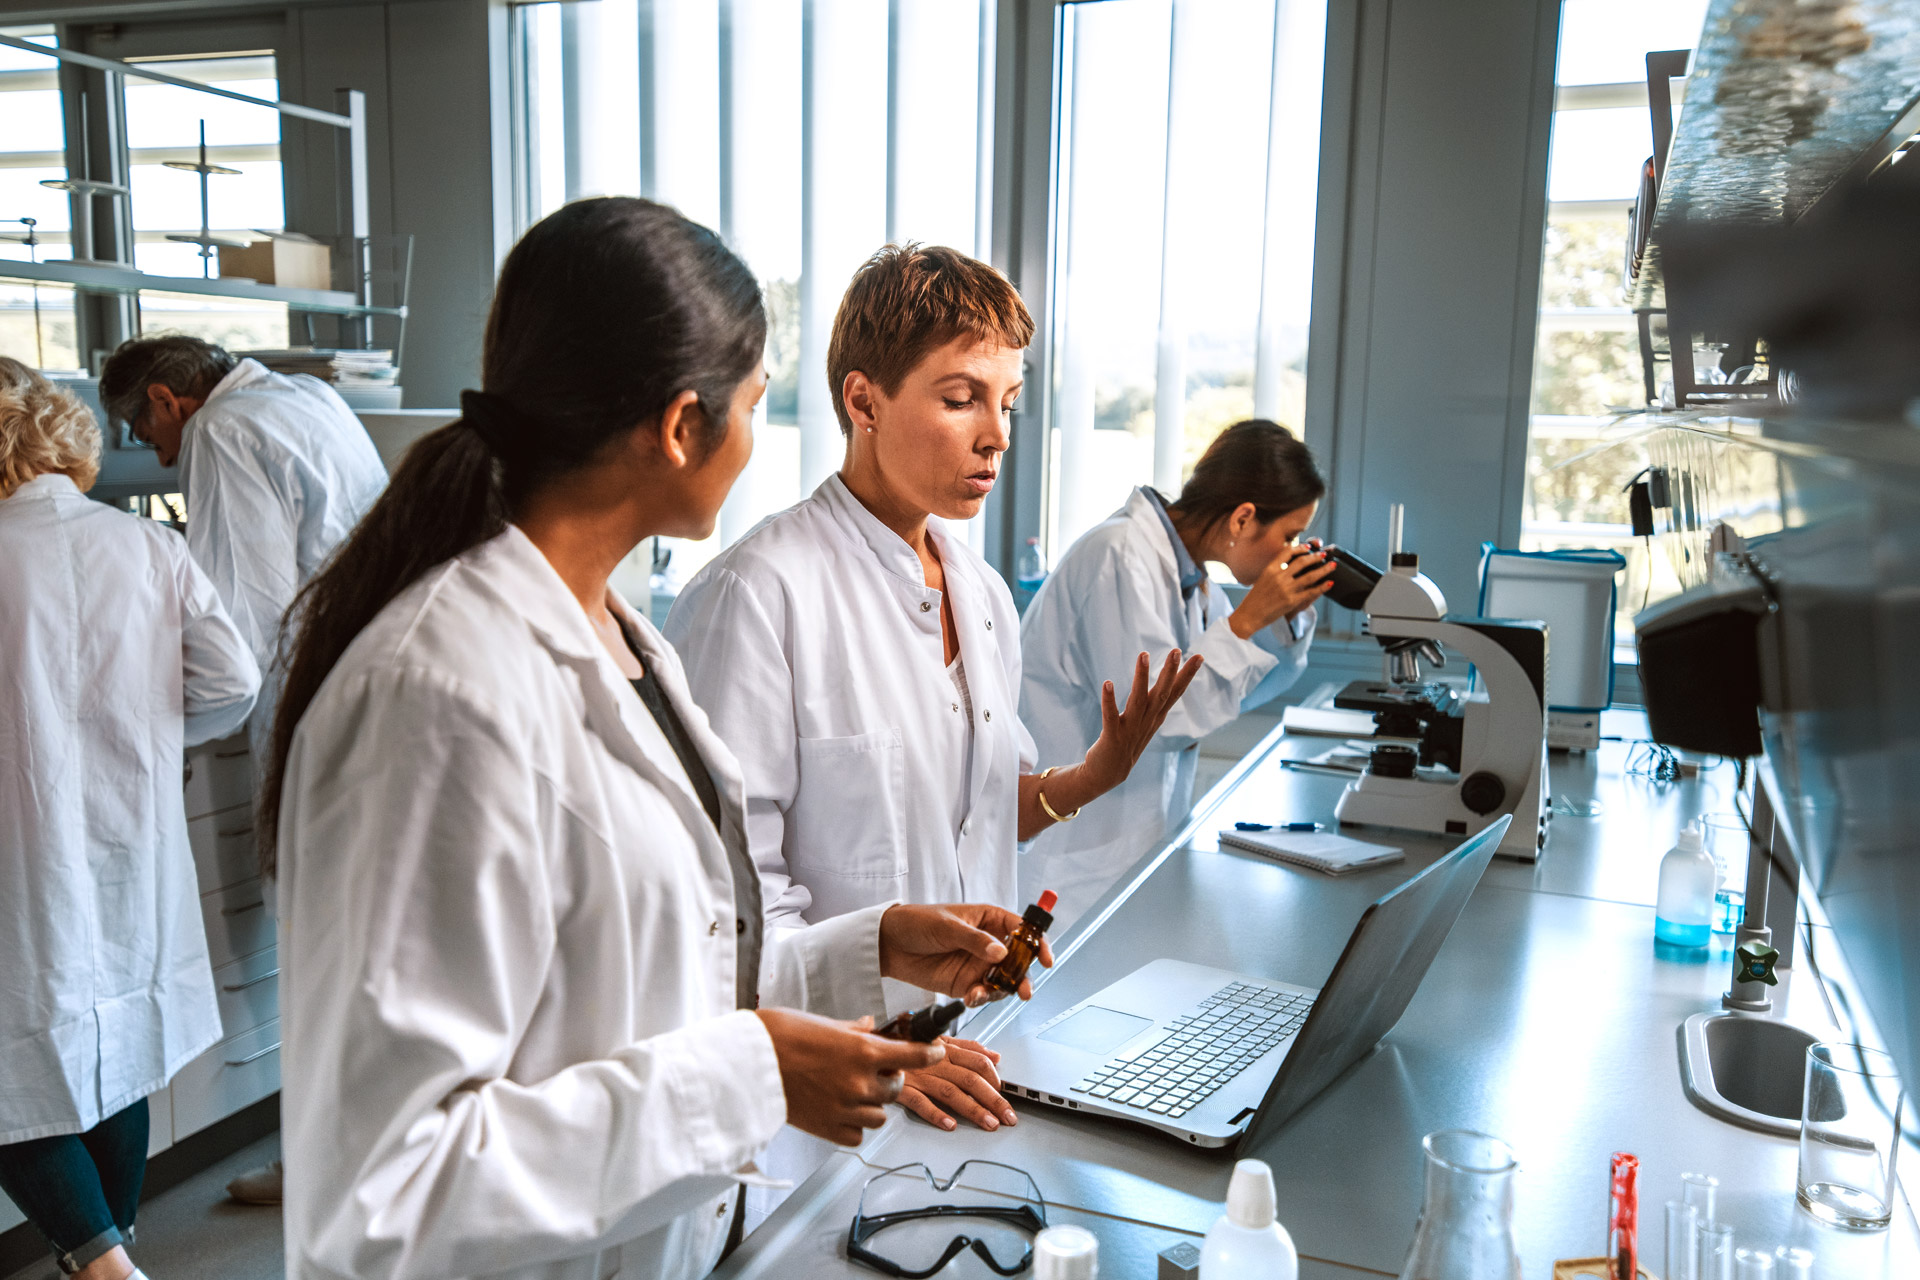 Scientists at work in a lab